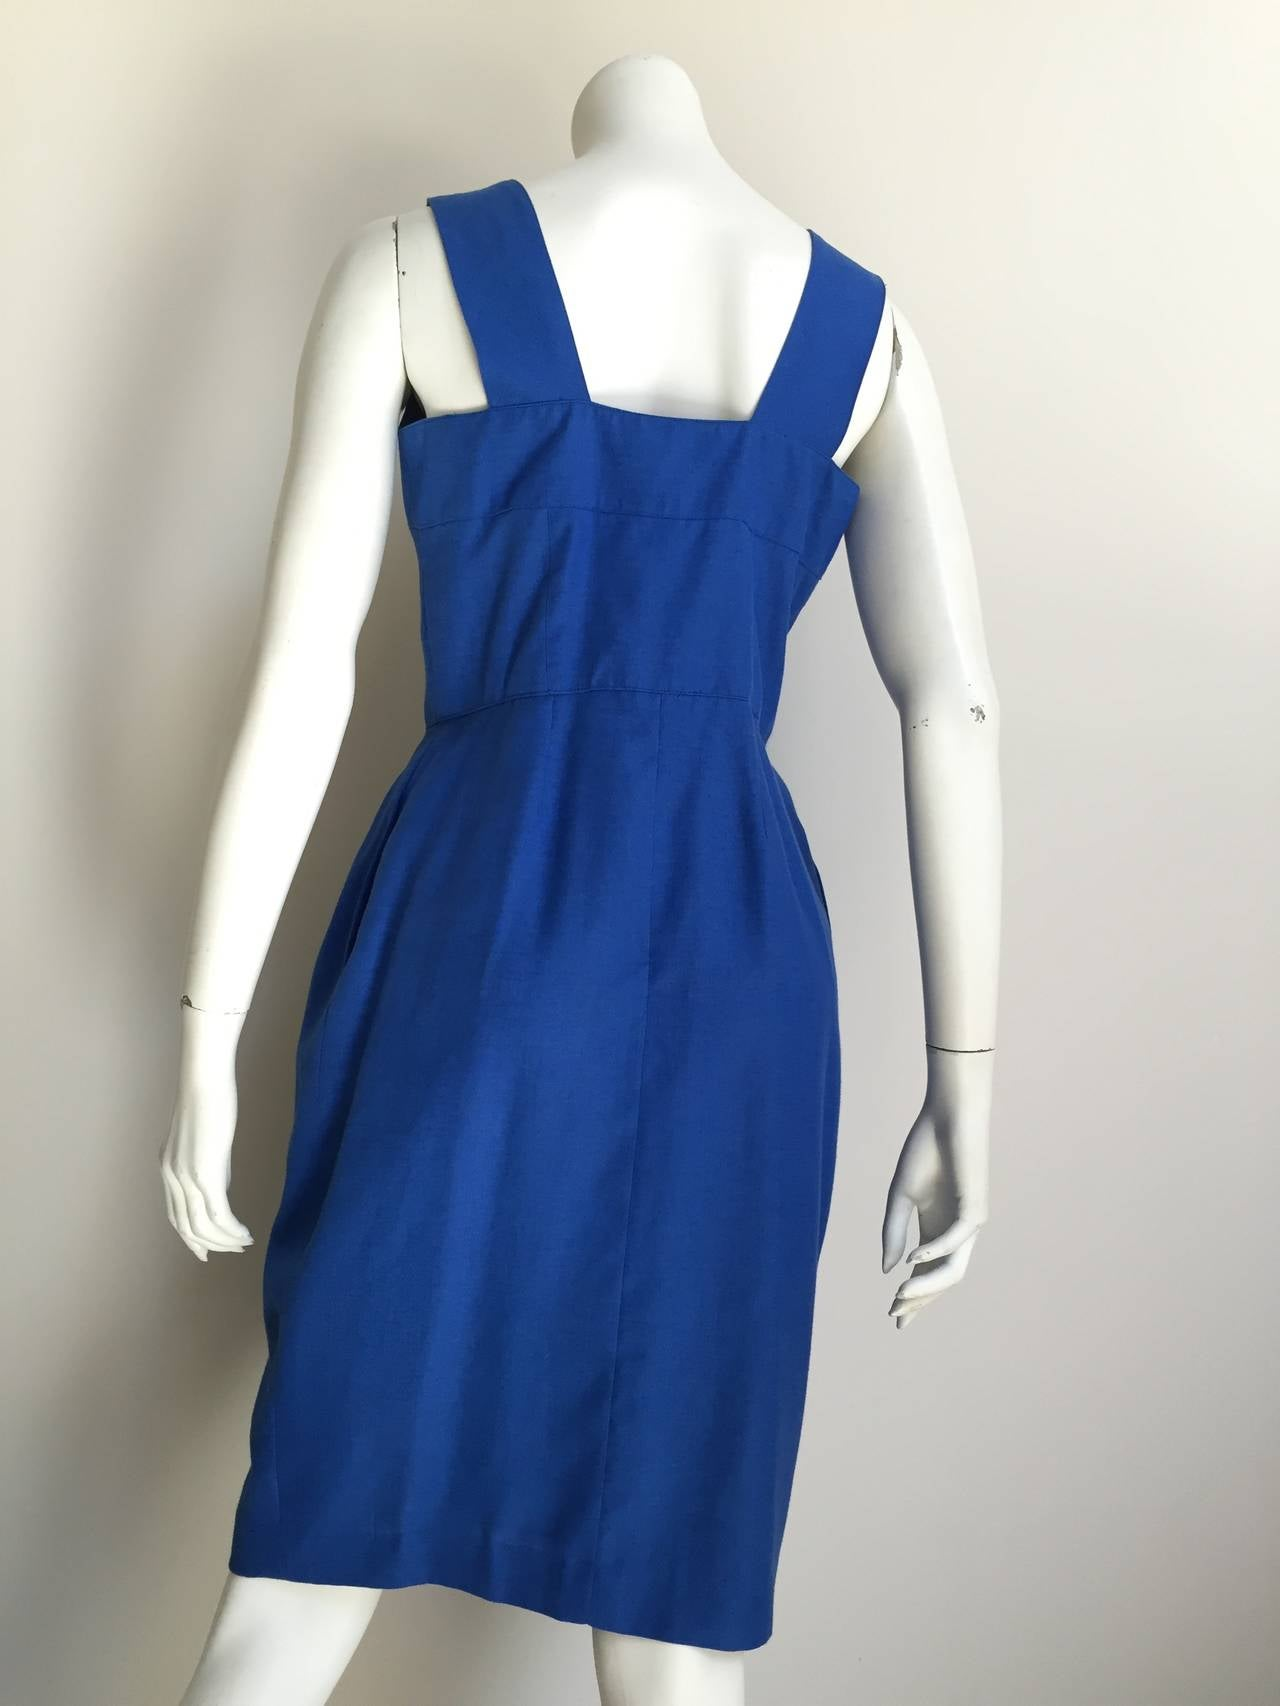 Guy Laroche Paris 80s blue dress with pockets size 6. 8